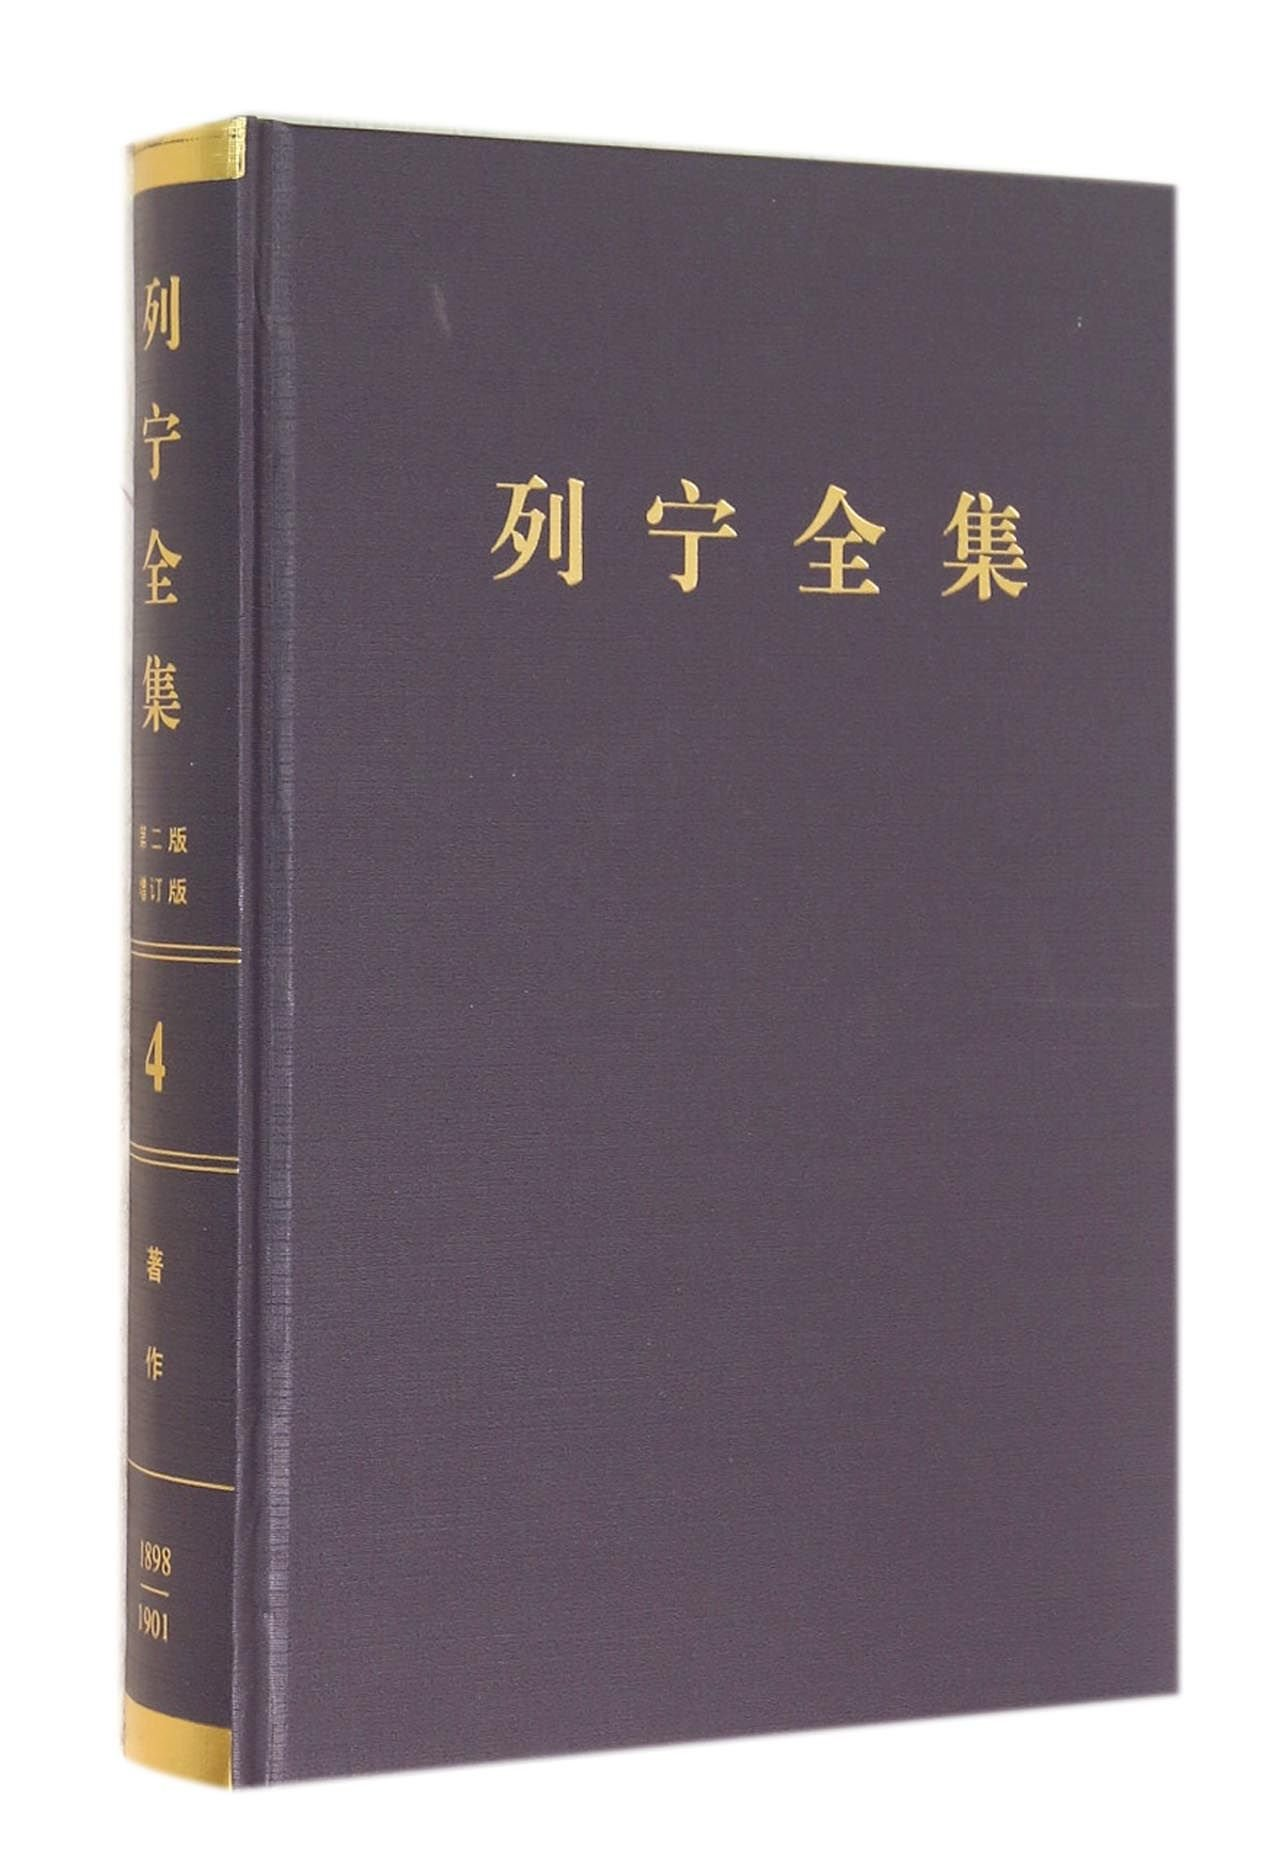 Lenin Collected Works: Volume IV (second edition updated version)(Chinese Edition) pdf